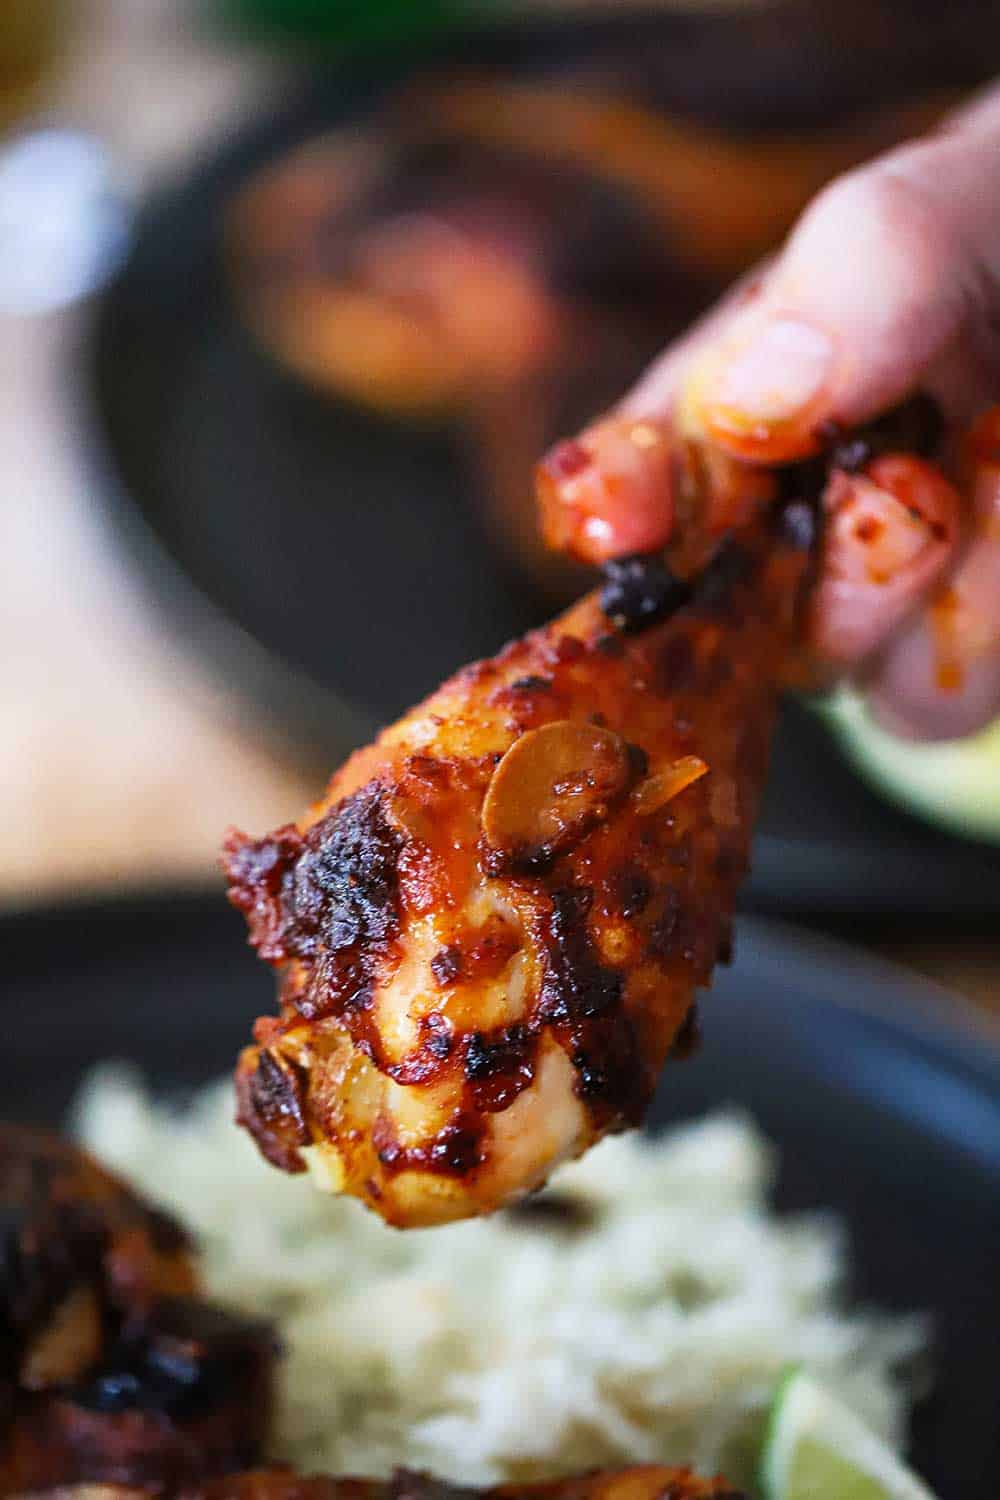 A hand, with a little sauce on the fingers, holding a roasted chipotle chicken leg up over a plate of cilantro-lime rice.